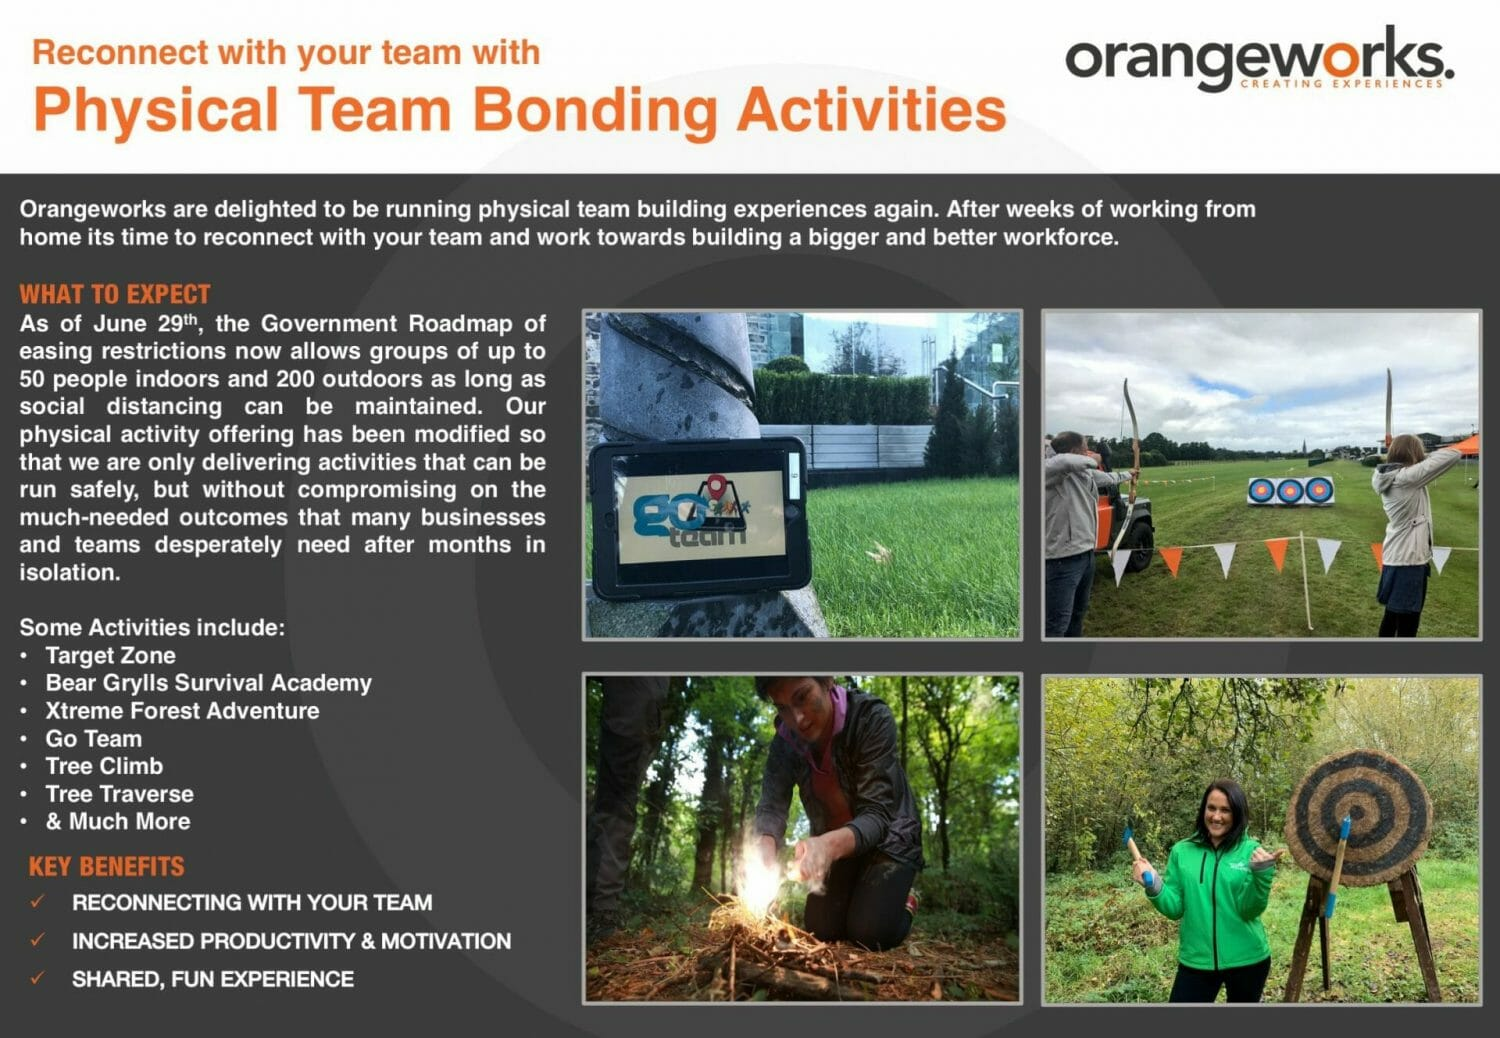 Orangeworks physical team bonding activities